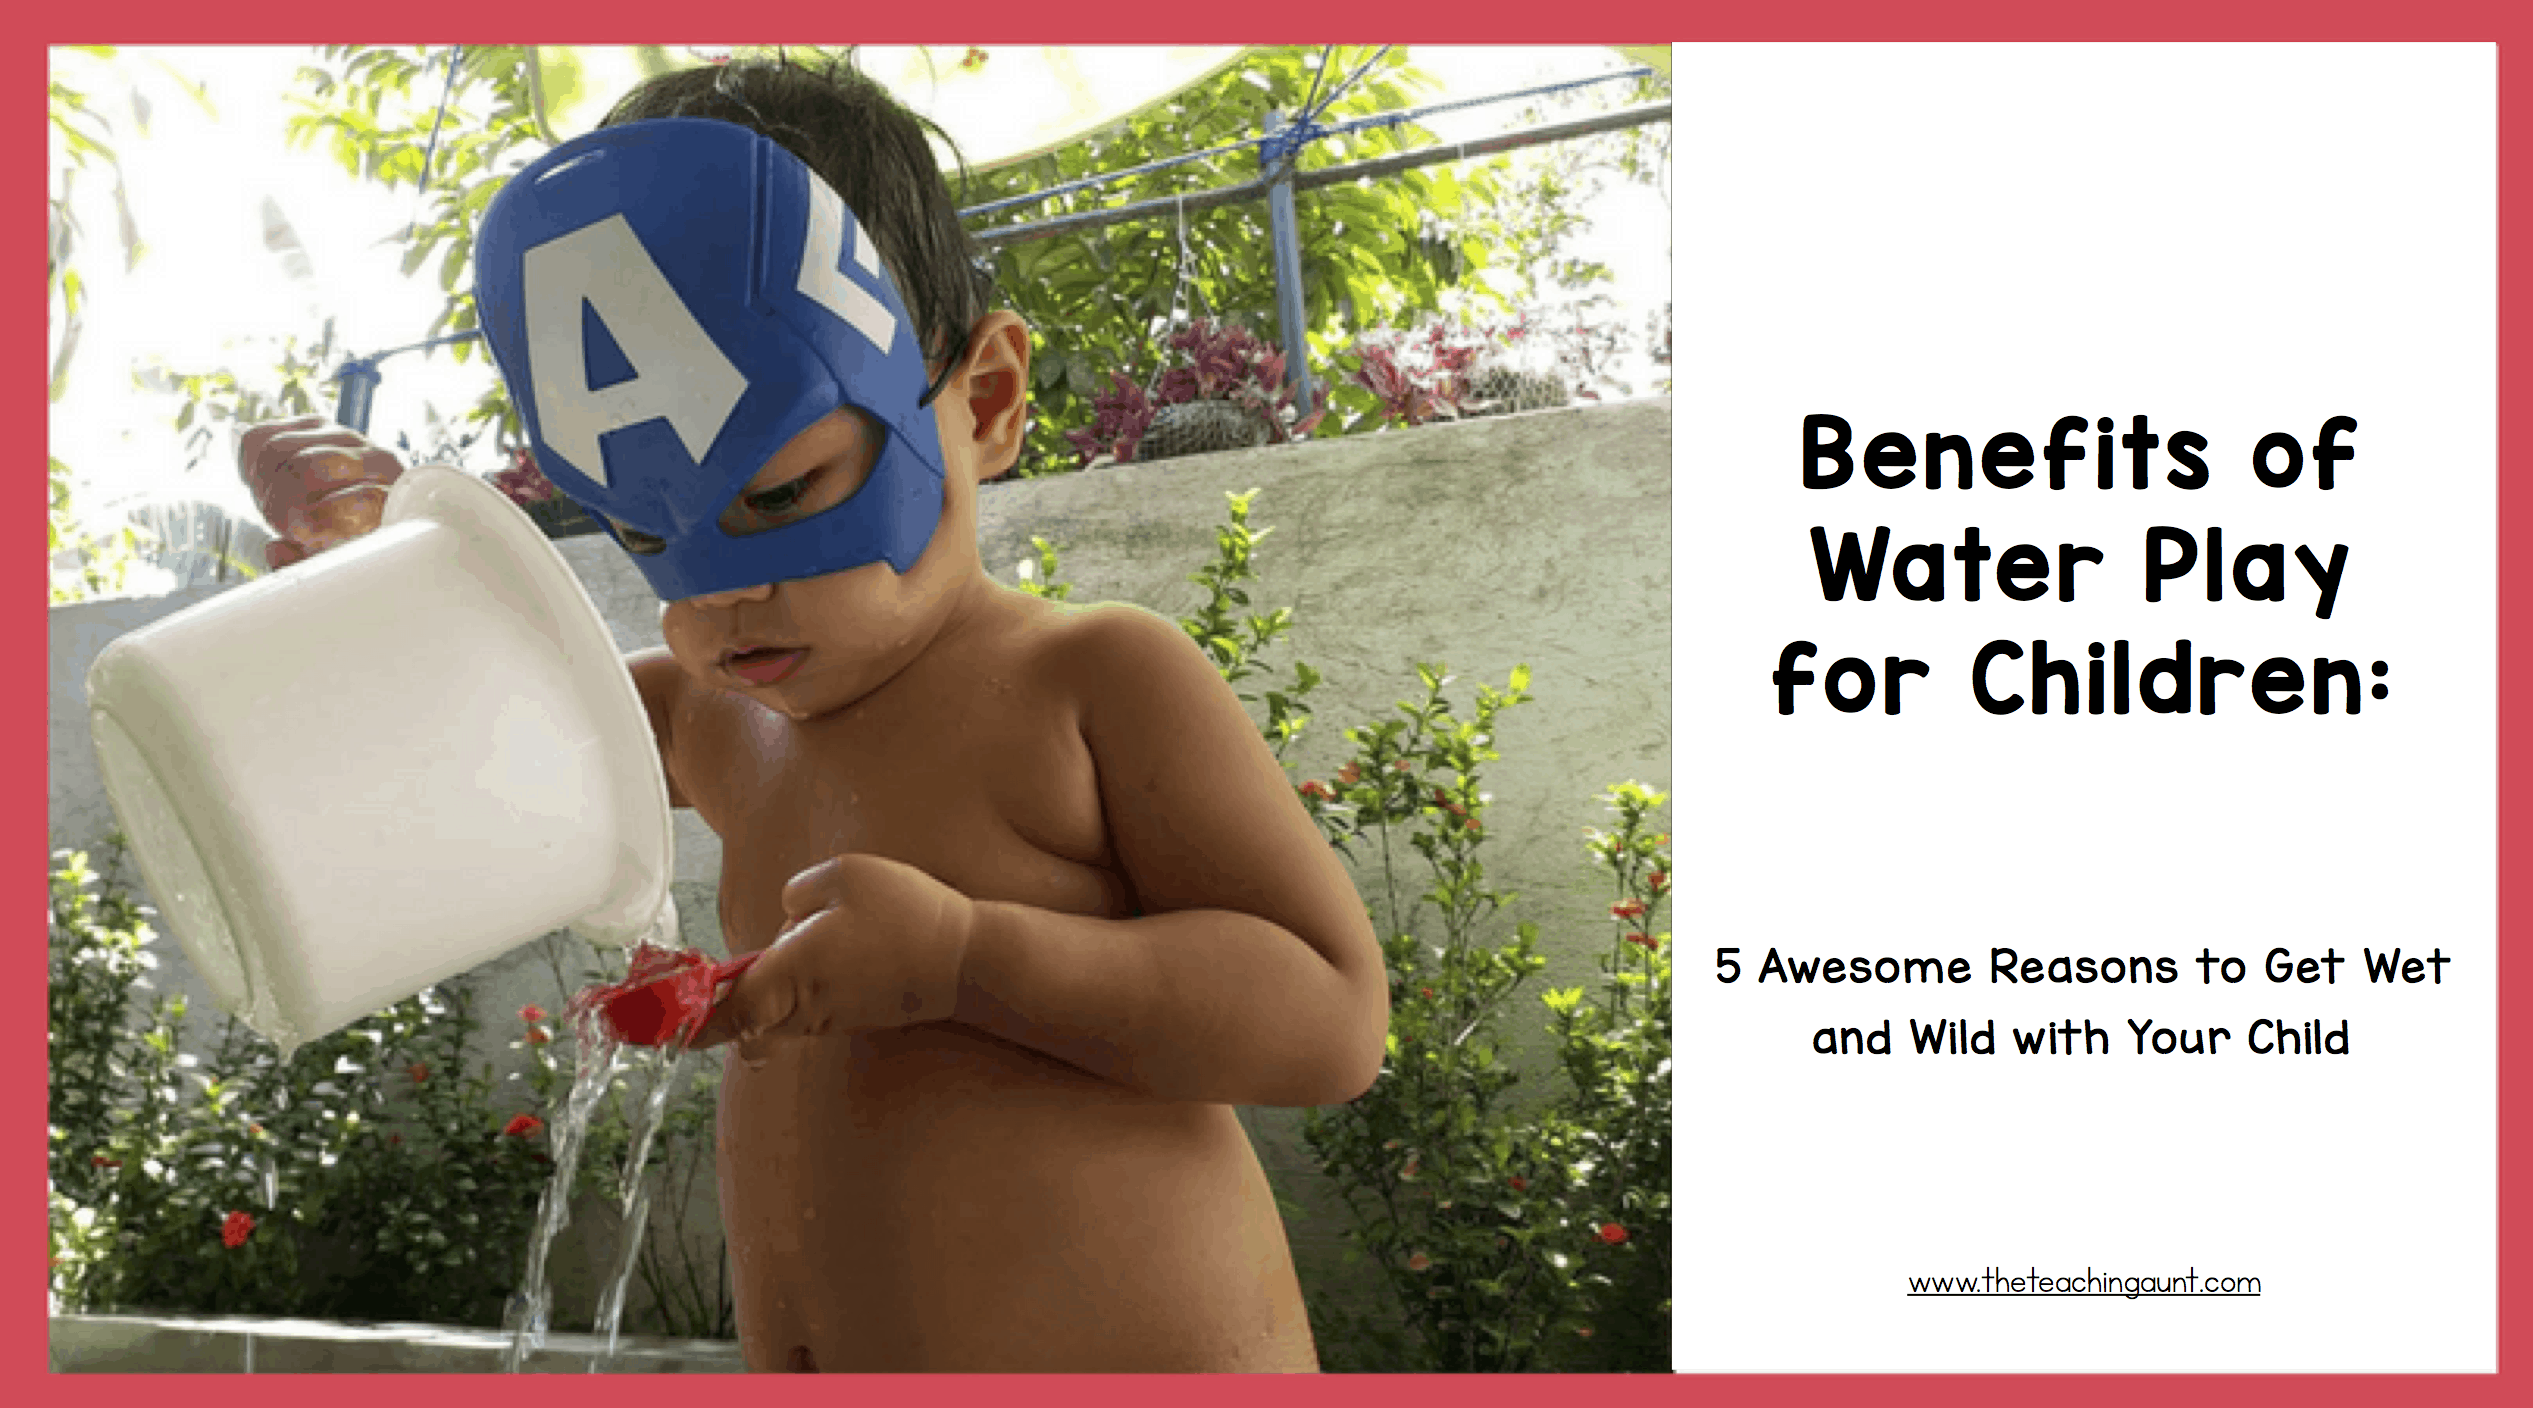 Benefits of Water Play for Children: 5 Awesome Reasons To Get Wet and Wild With Your Child